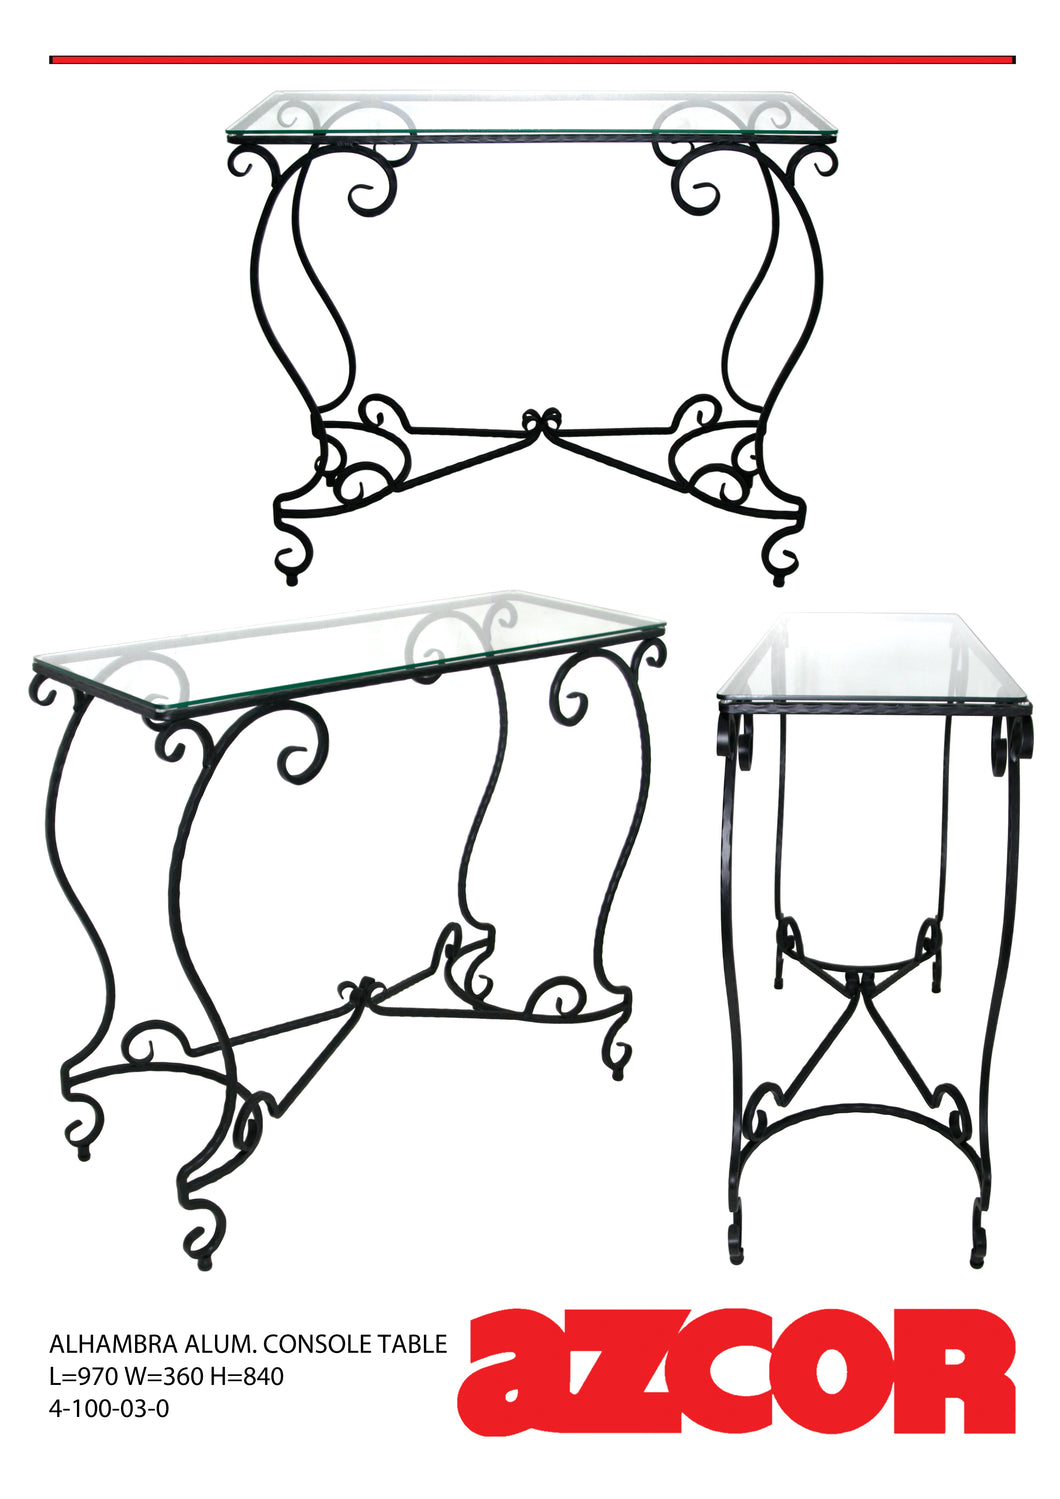 Alhambra Aluminum Console Table